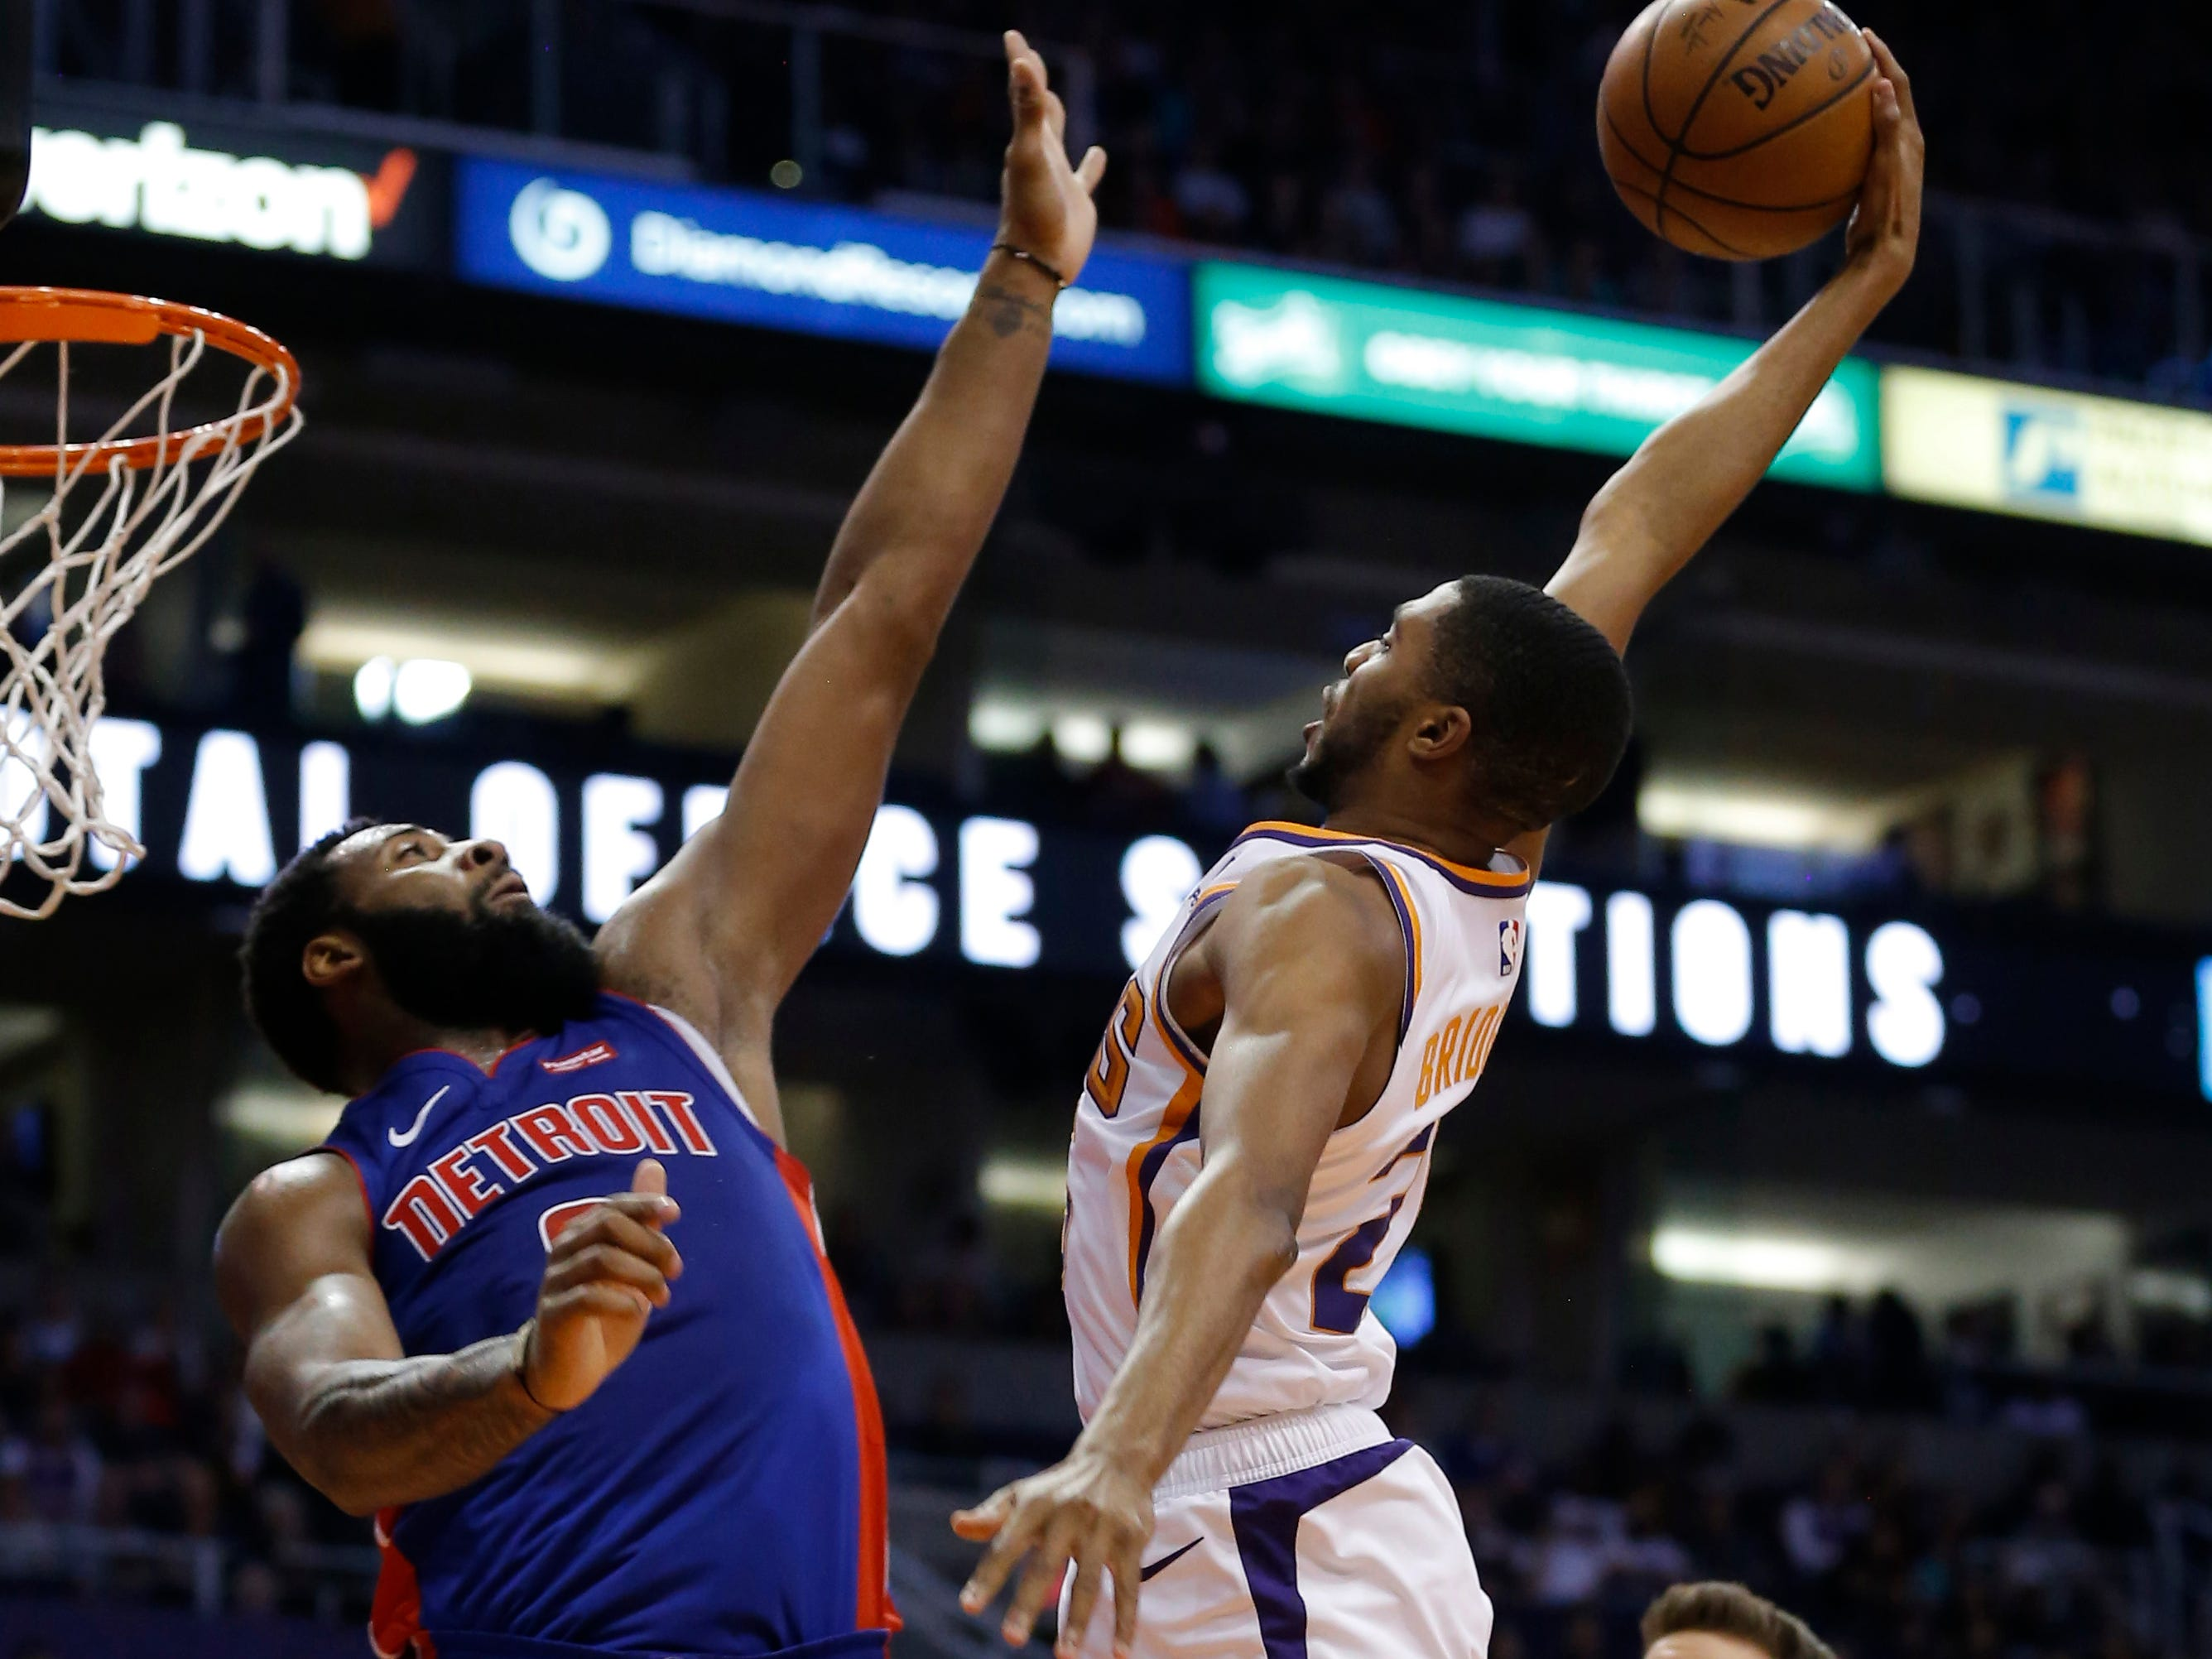 Mar 21, 2019; Phoenix, AZ, USA; Phoenix Suns forward Mikal Bridges (25) shoots over Detroit Pistons center Andre Drummond (0) in the first half during an NBA basketball game at Talking Stick Resort Arena.